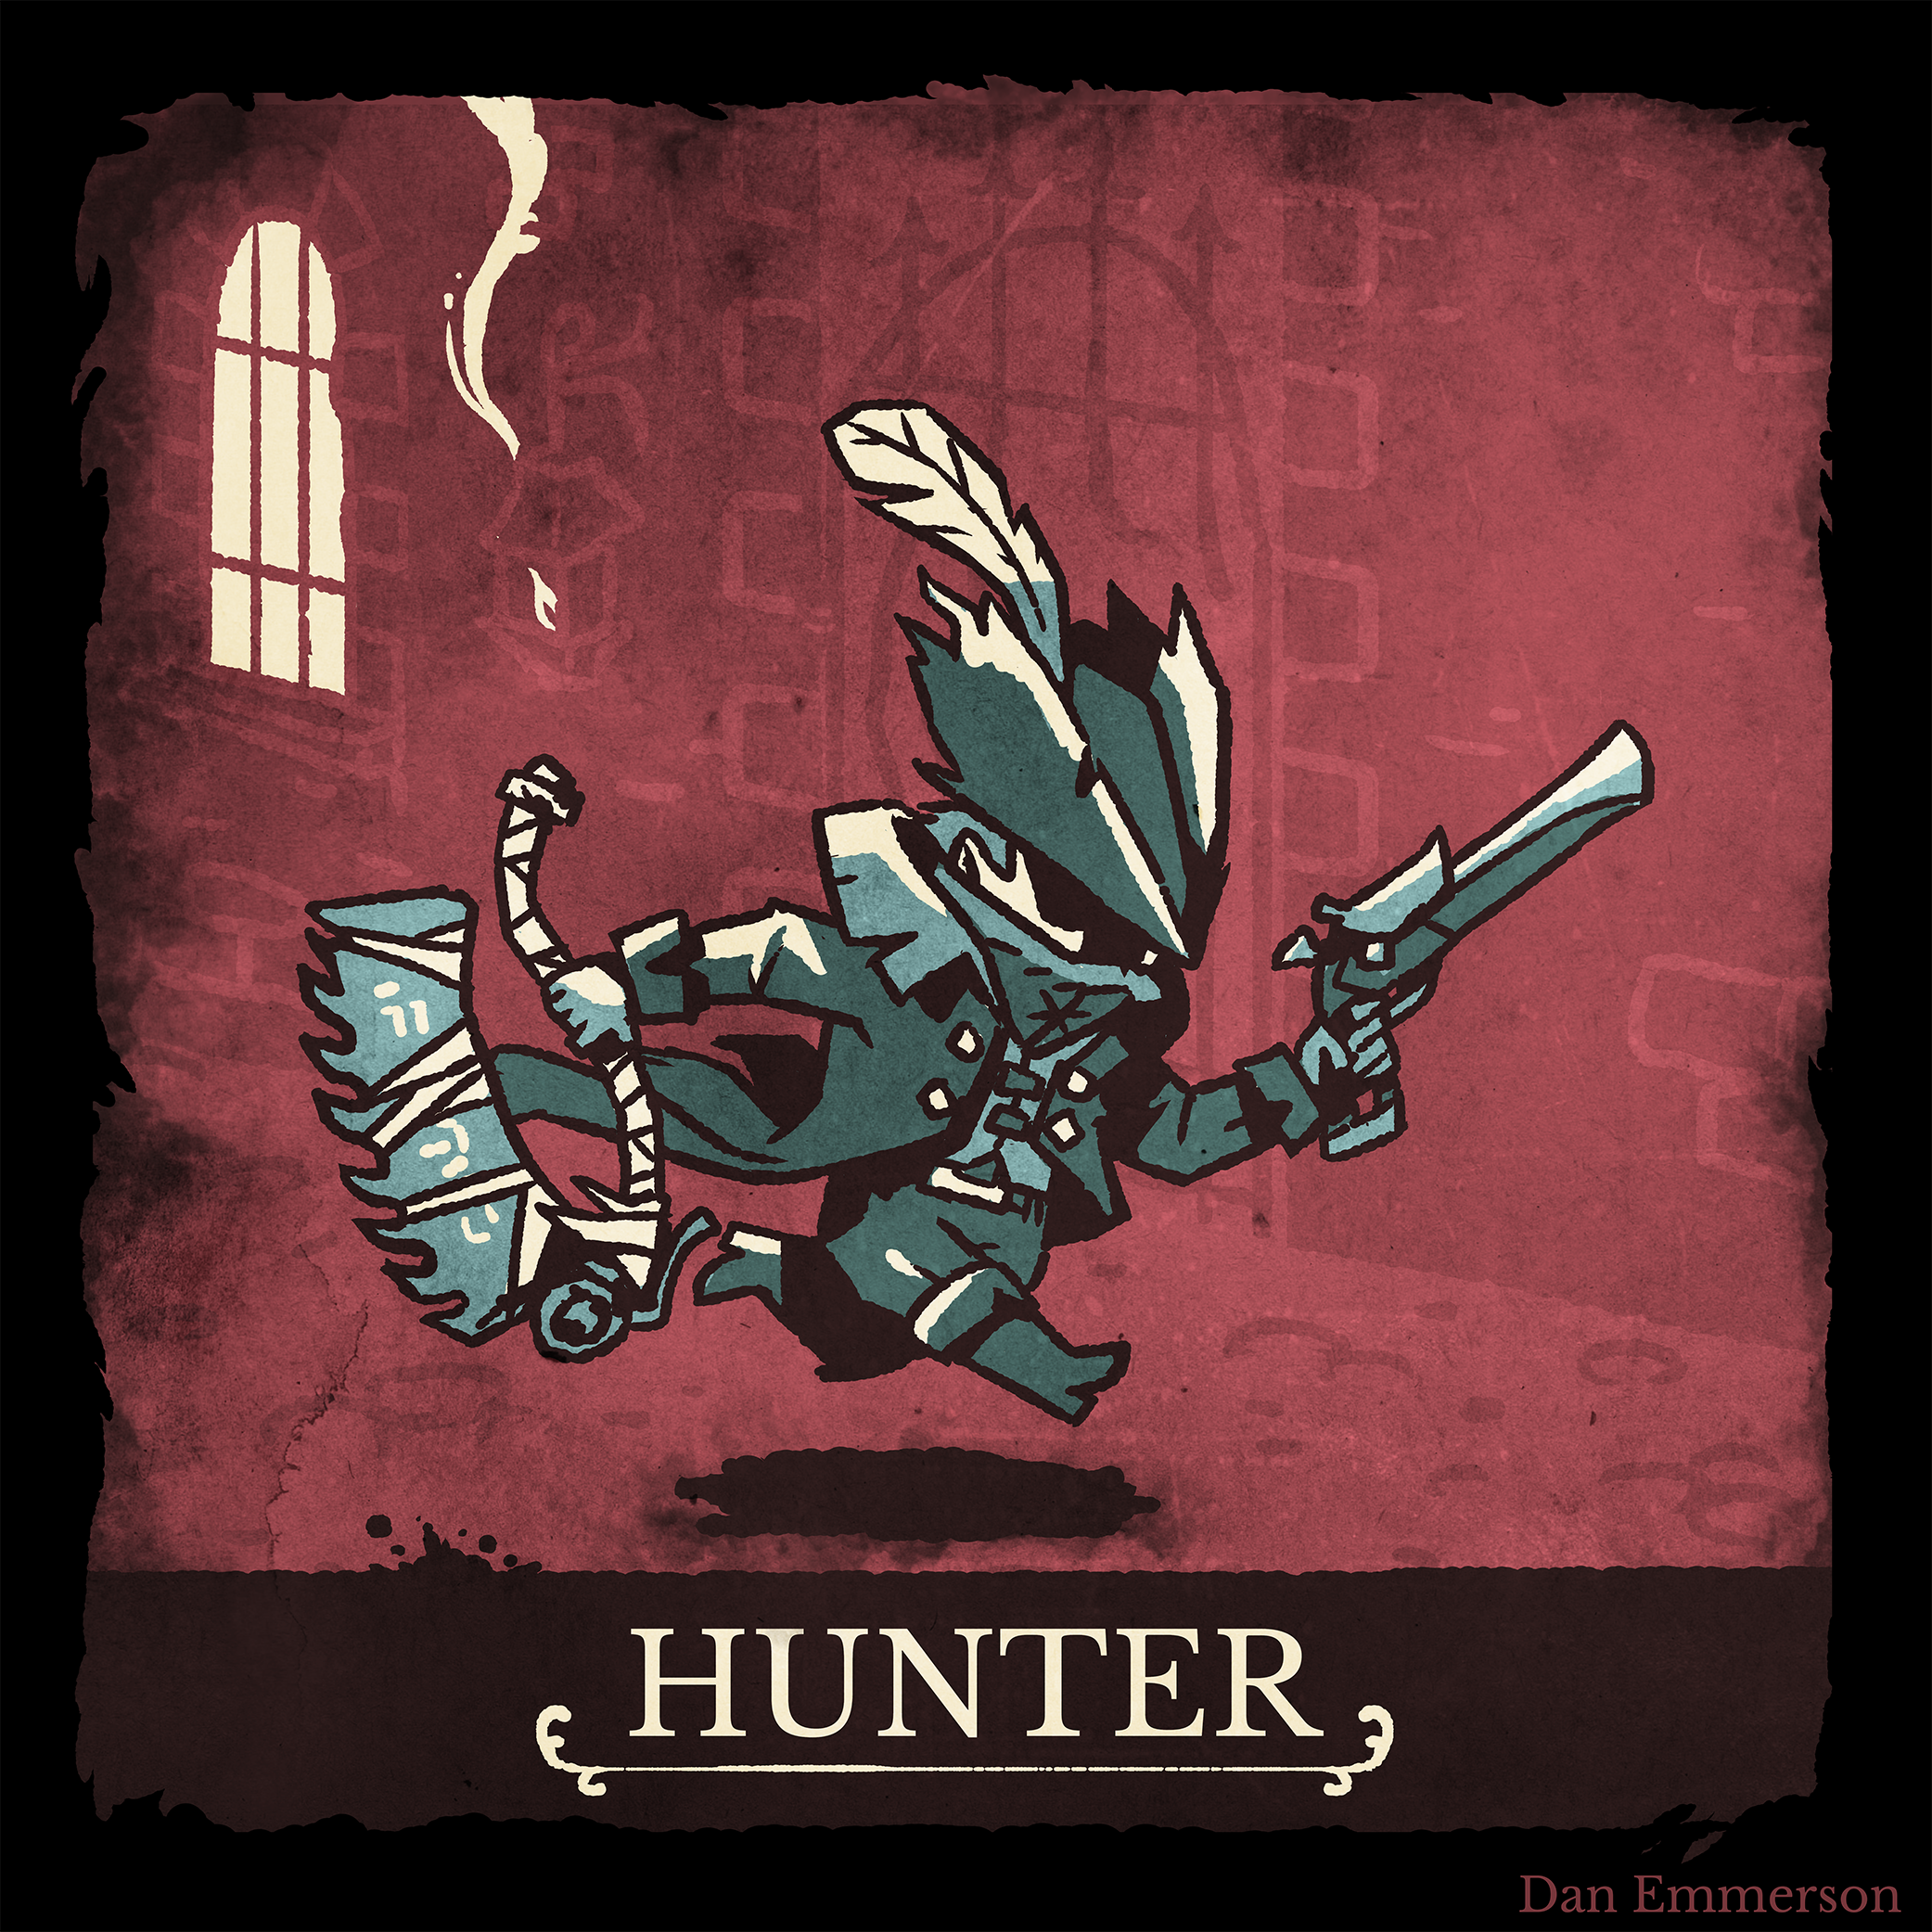 A hunter from Bloodborne inspired by Darkest Dungeon